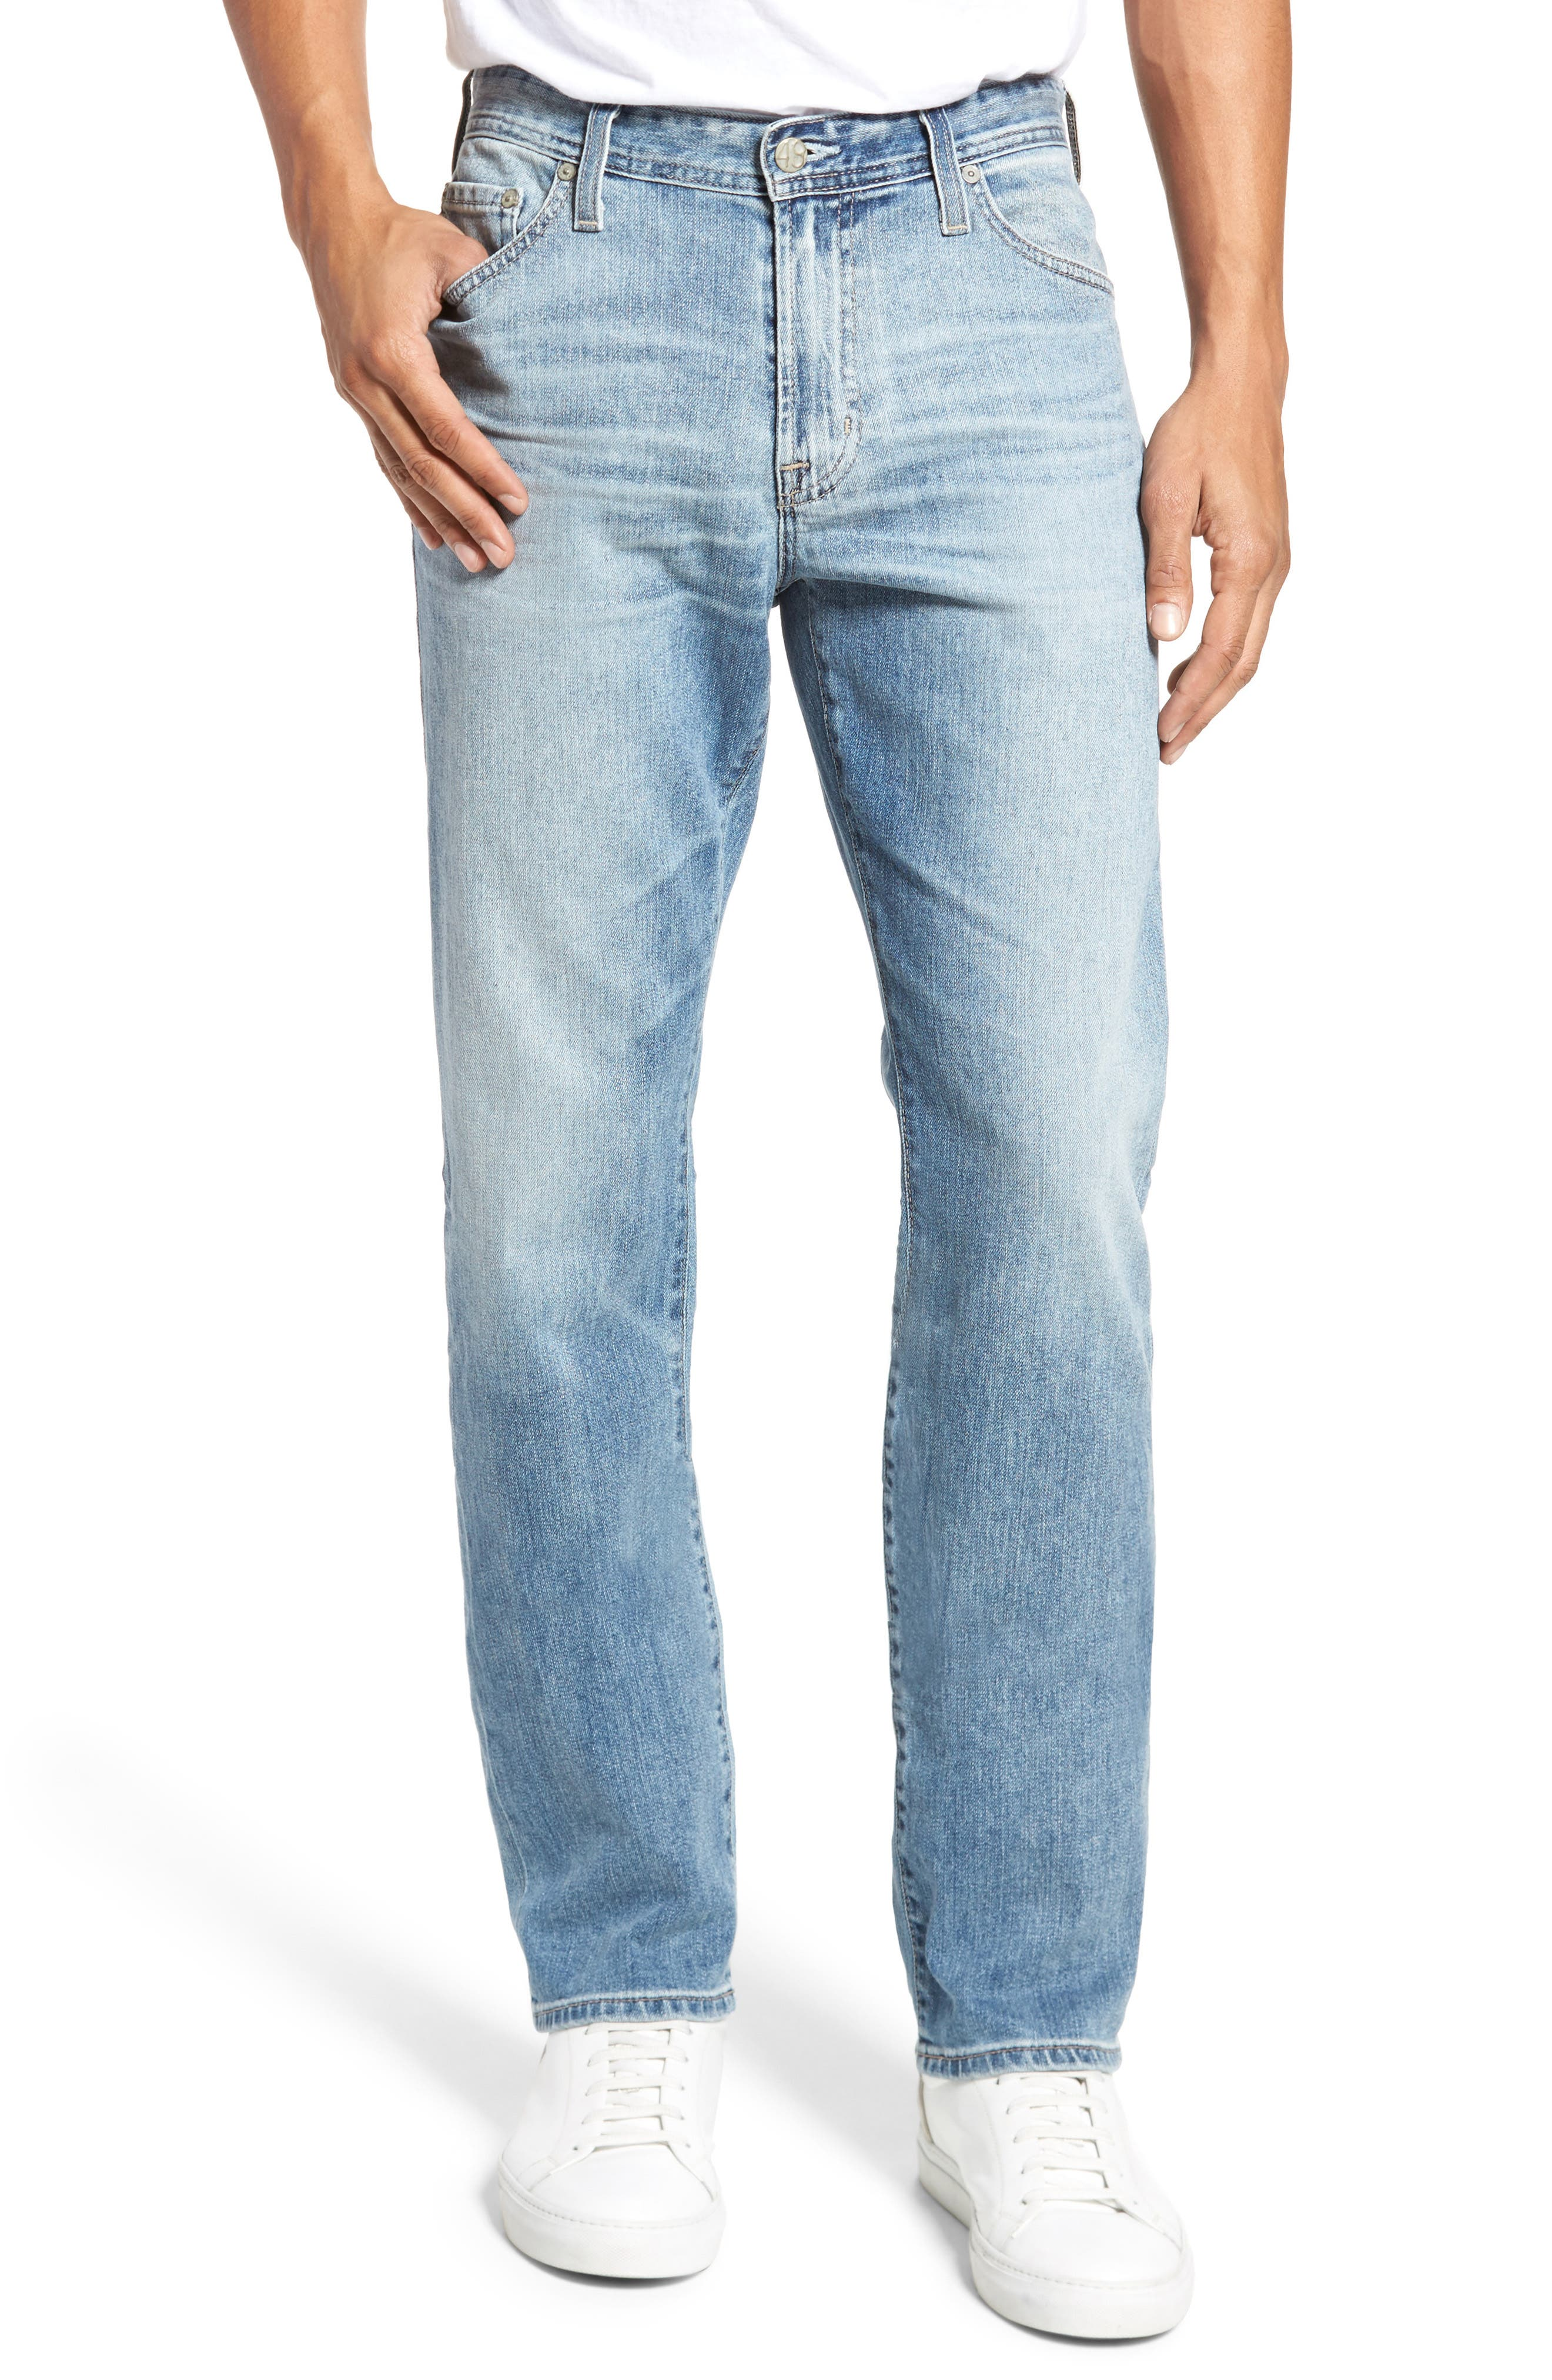 Everett Slim Straight Fit Jeans,                             Main thumbnail 1, color,                             Bright Sky